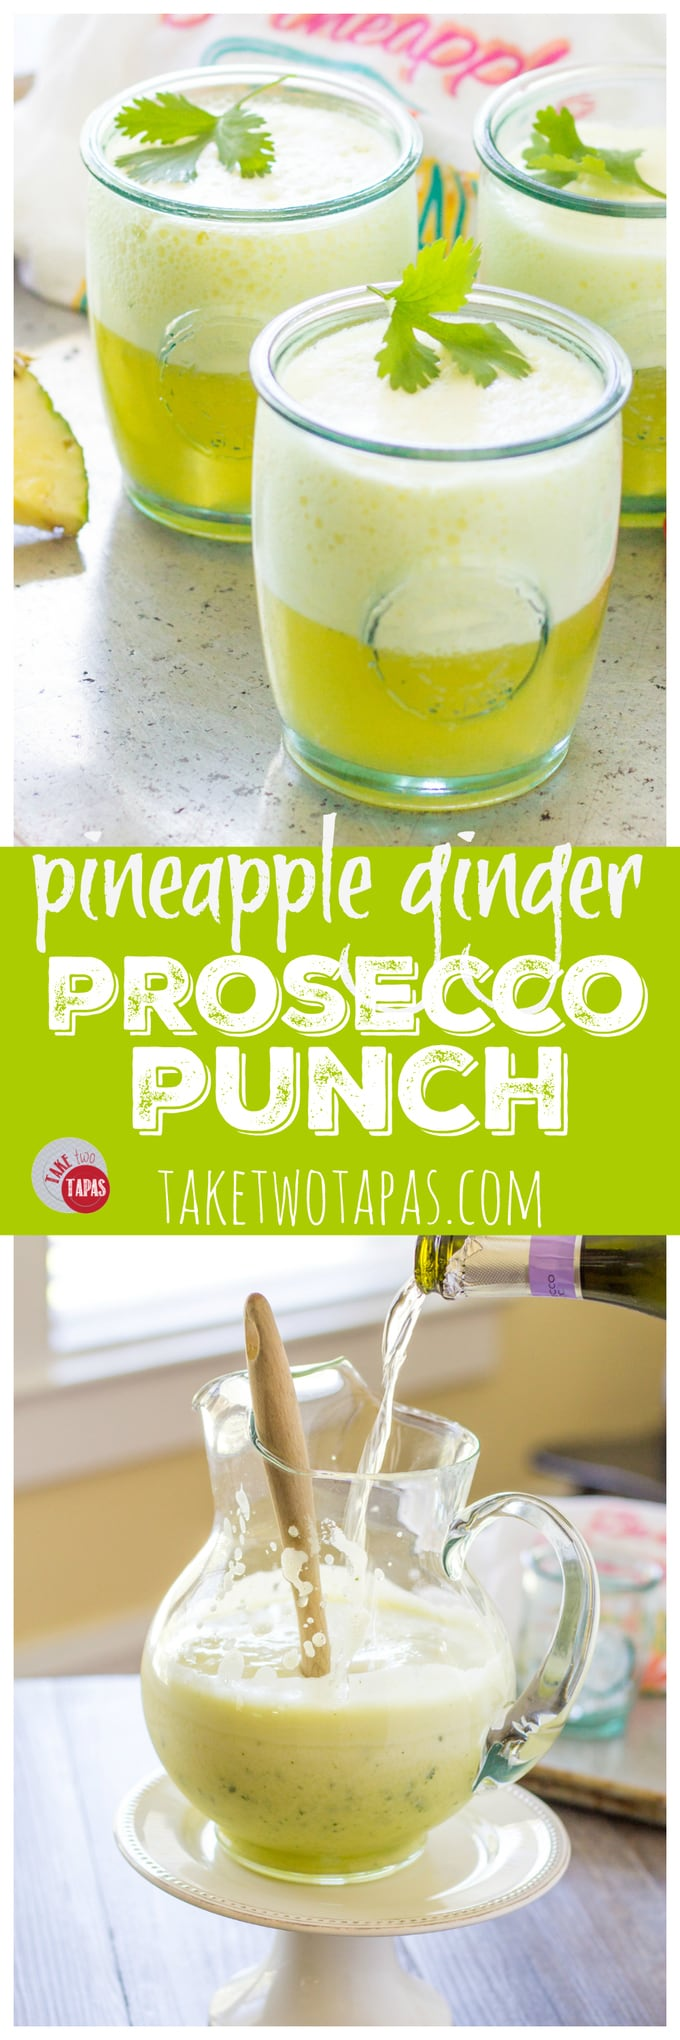 This pitcher style pineapple ginger prosecco punch is perfect for an intimate party or a full blown celebration! Make ahead and add the prosecco at the last minute for a bubbly and refreshing cocktail! Mocktail version available too! Pineapple Ginger Prosecco Punch Recipe | Take Two Tapas | #Pineapple #Ginger #Prosecco #punch #Brunch #largebatch #Entertaining #easydrinks